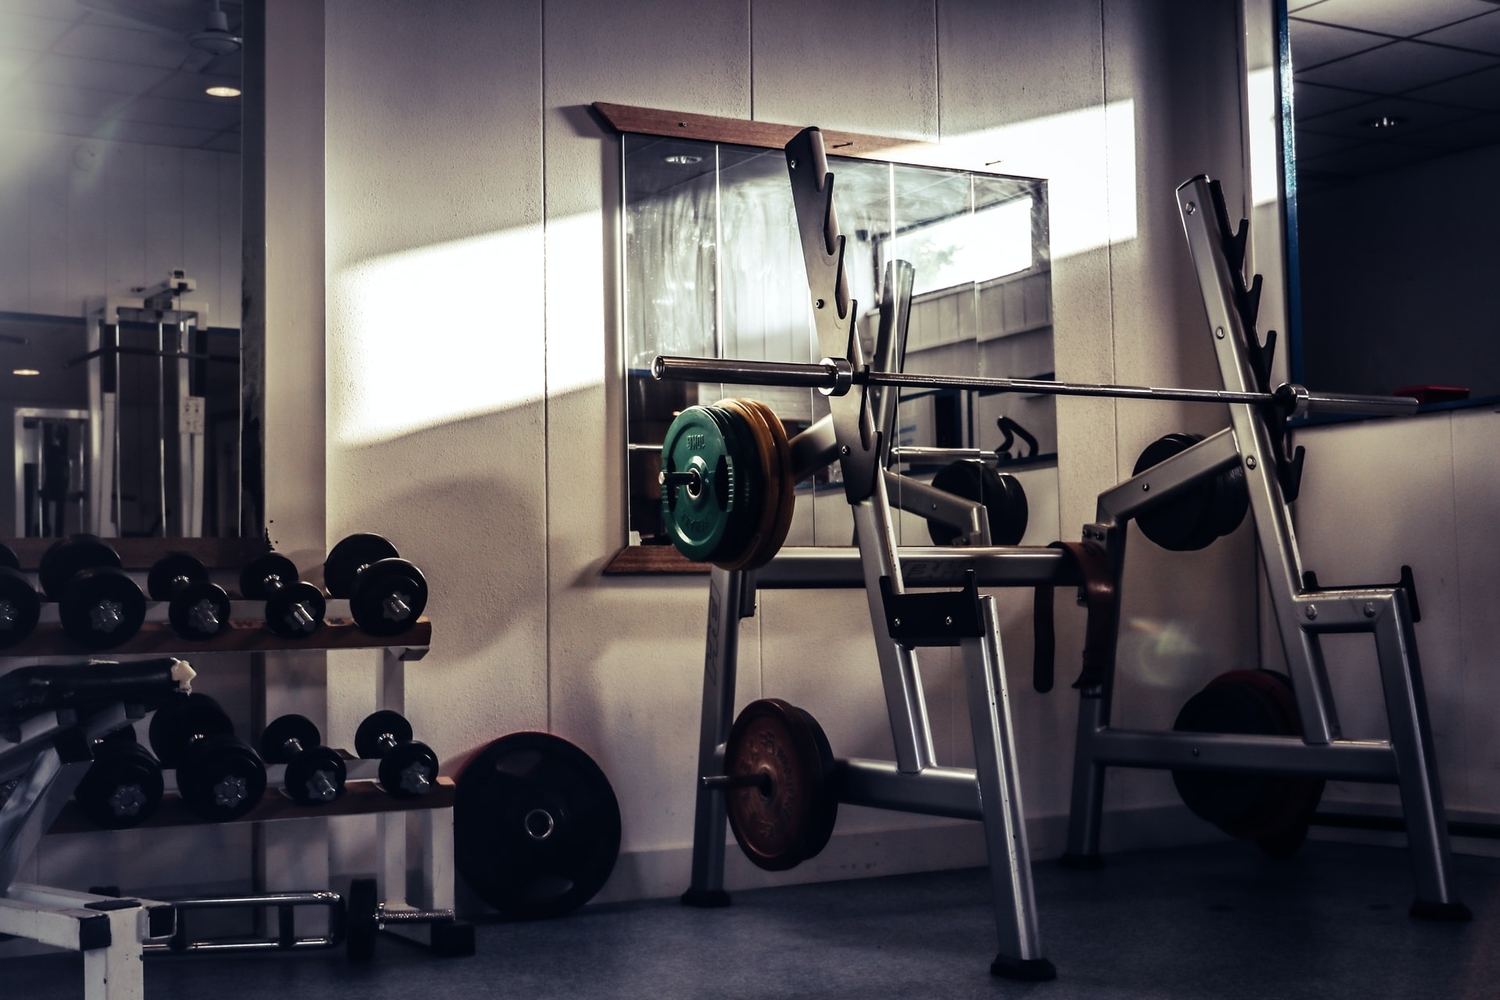 A photo of a weight-lifting equipment at an indoor gym.